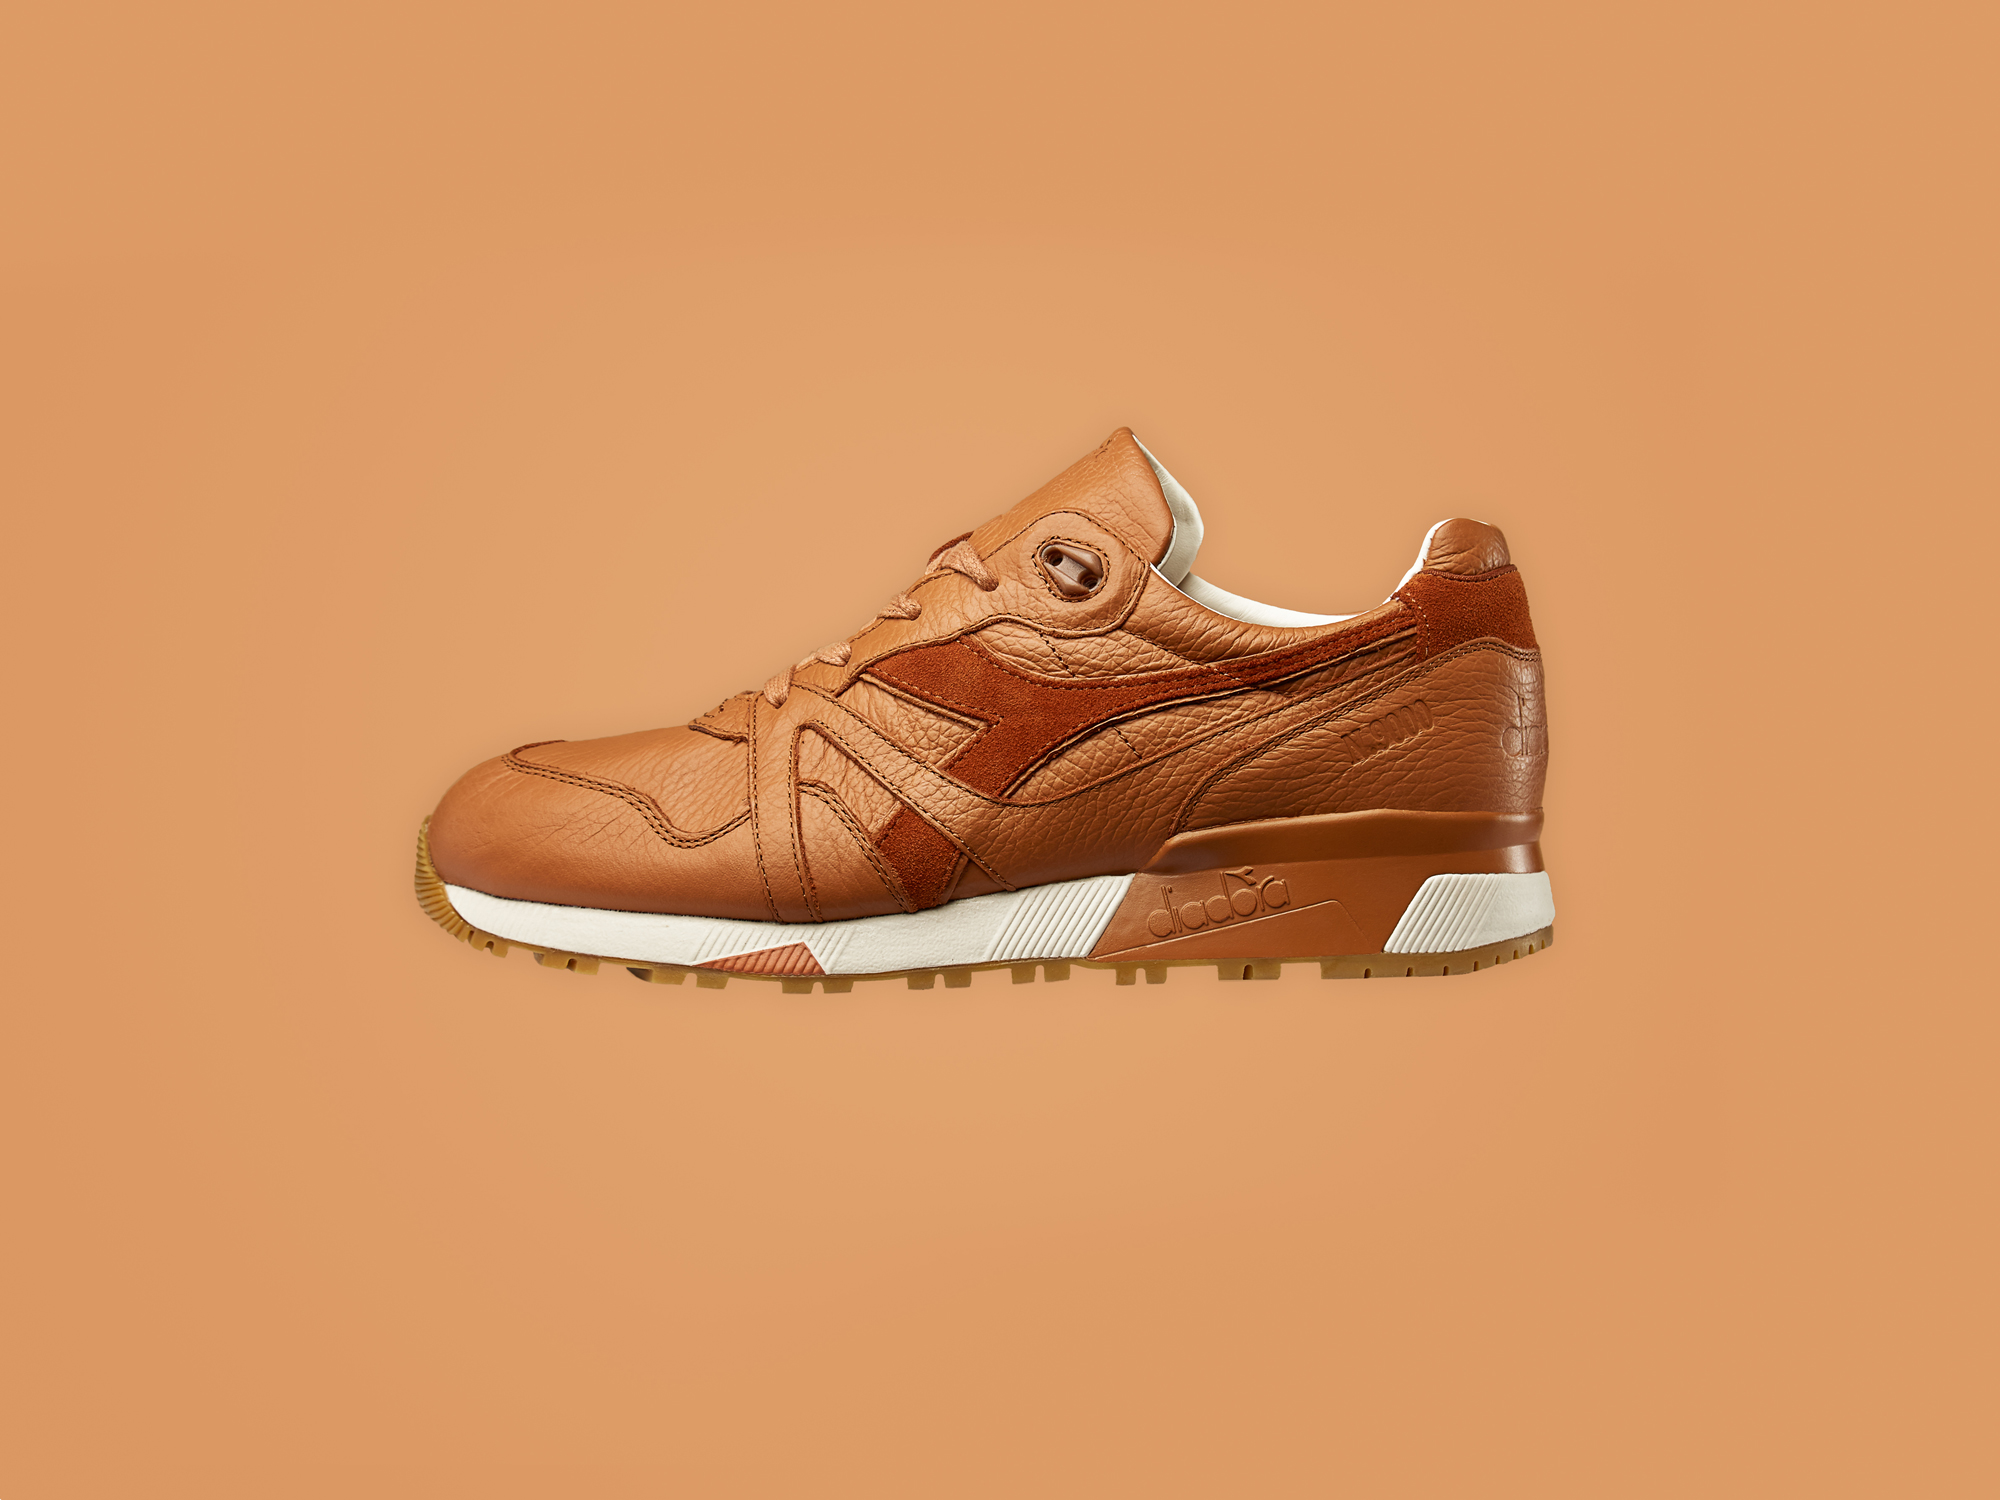 Diadora-Georgia-Peach-Brown-Sugar